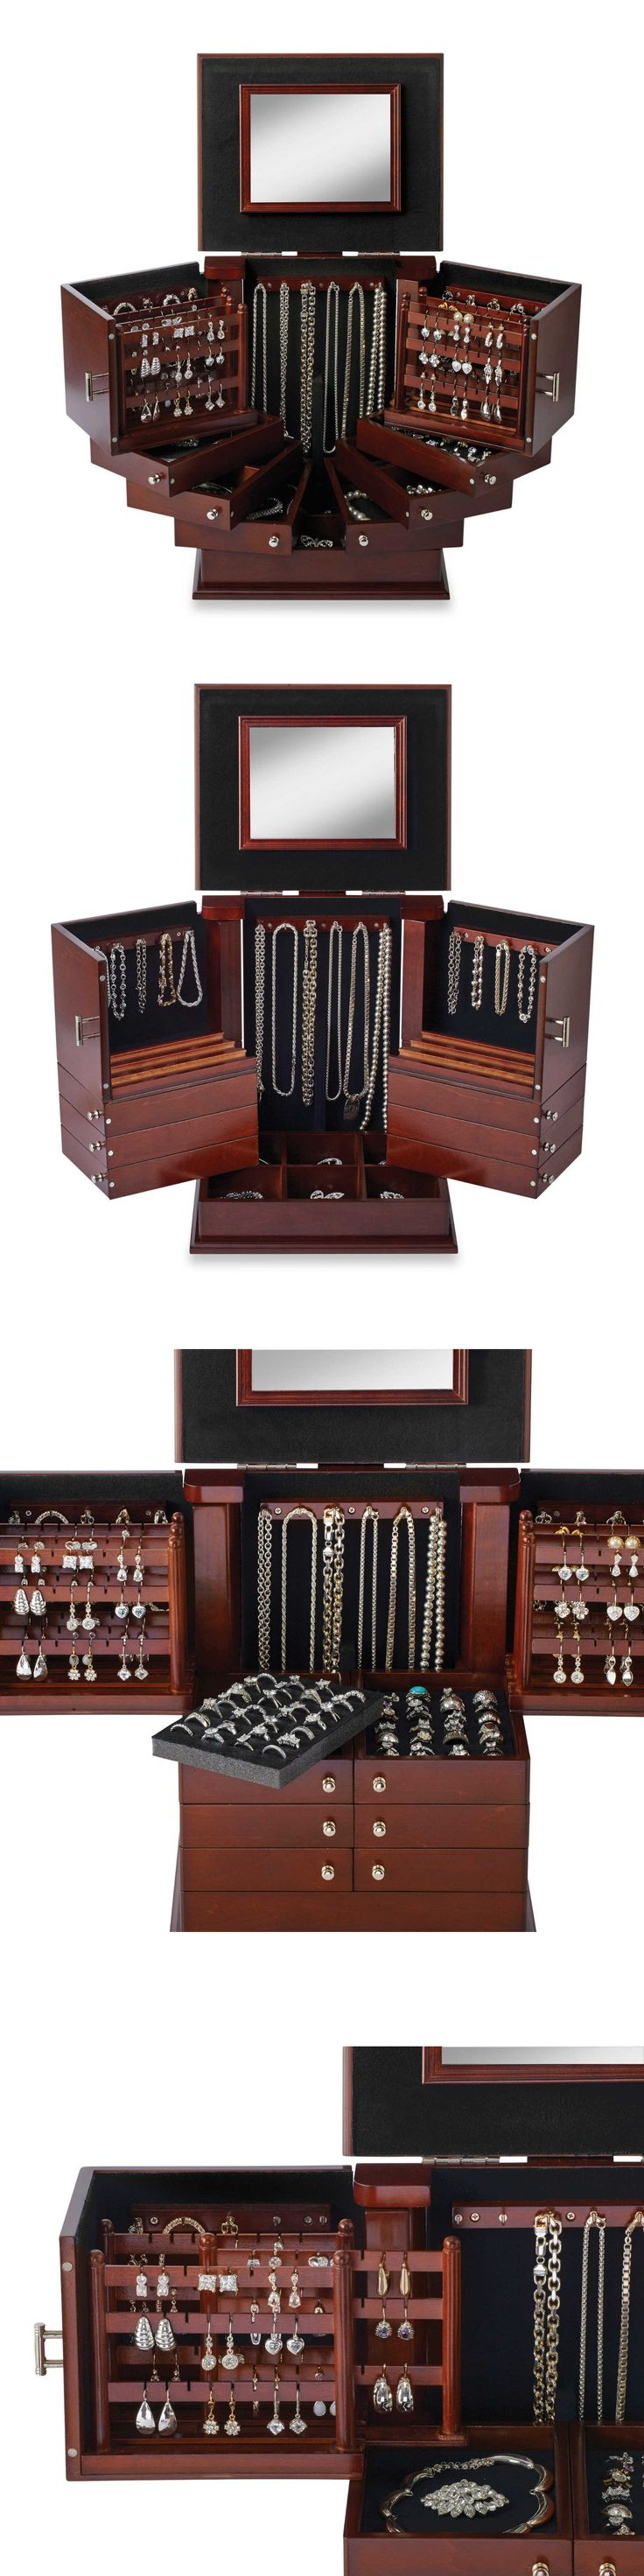 Awesome Lori Greiner Wall Mounted Jewelry Cabinet